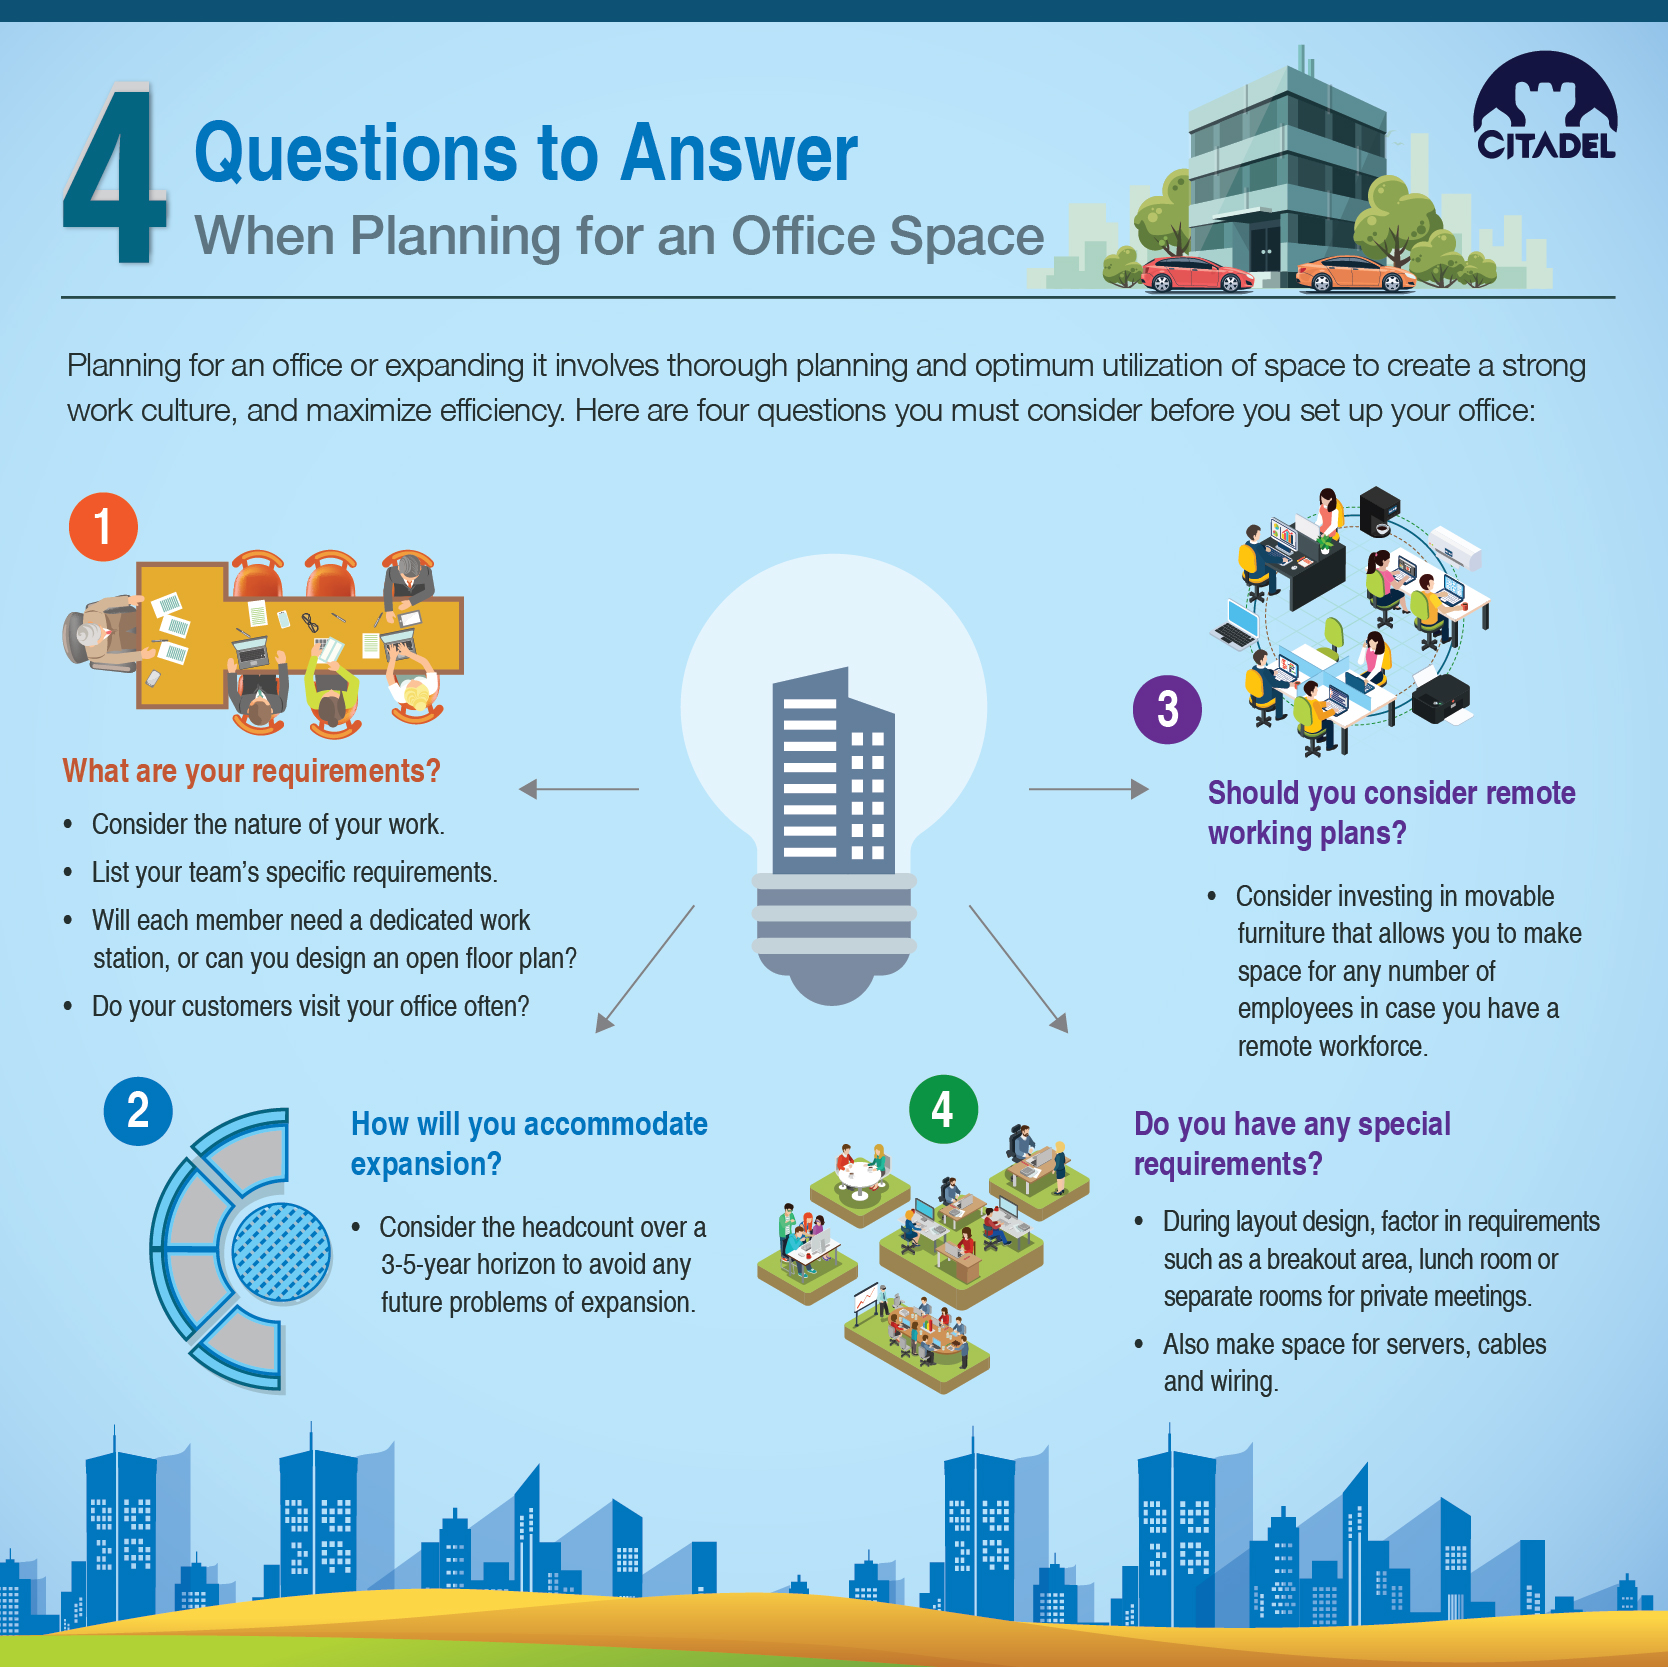 4 QUESTIONS TO ANSWER WHEN PLANNING FOR OFFICE SPACE